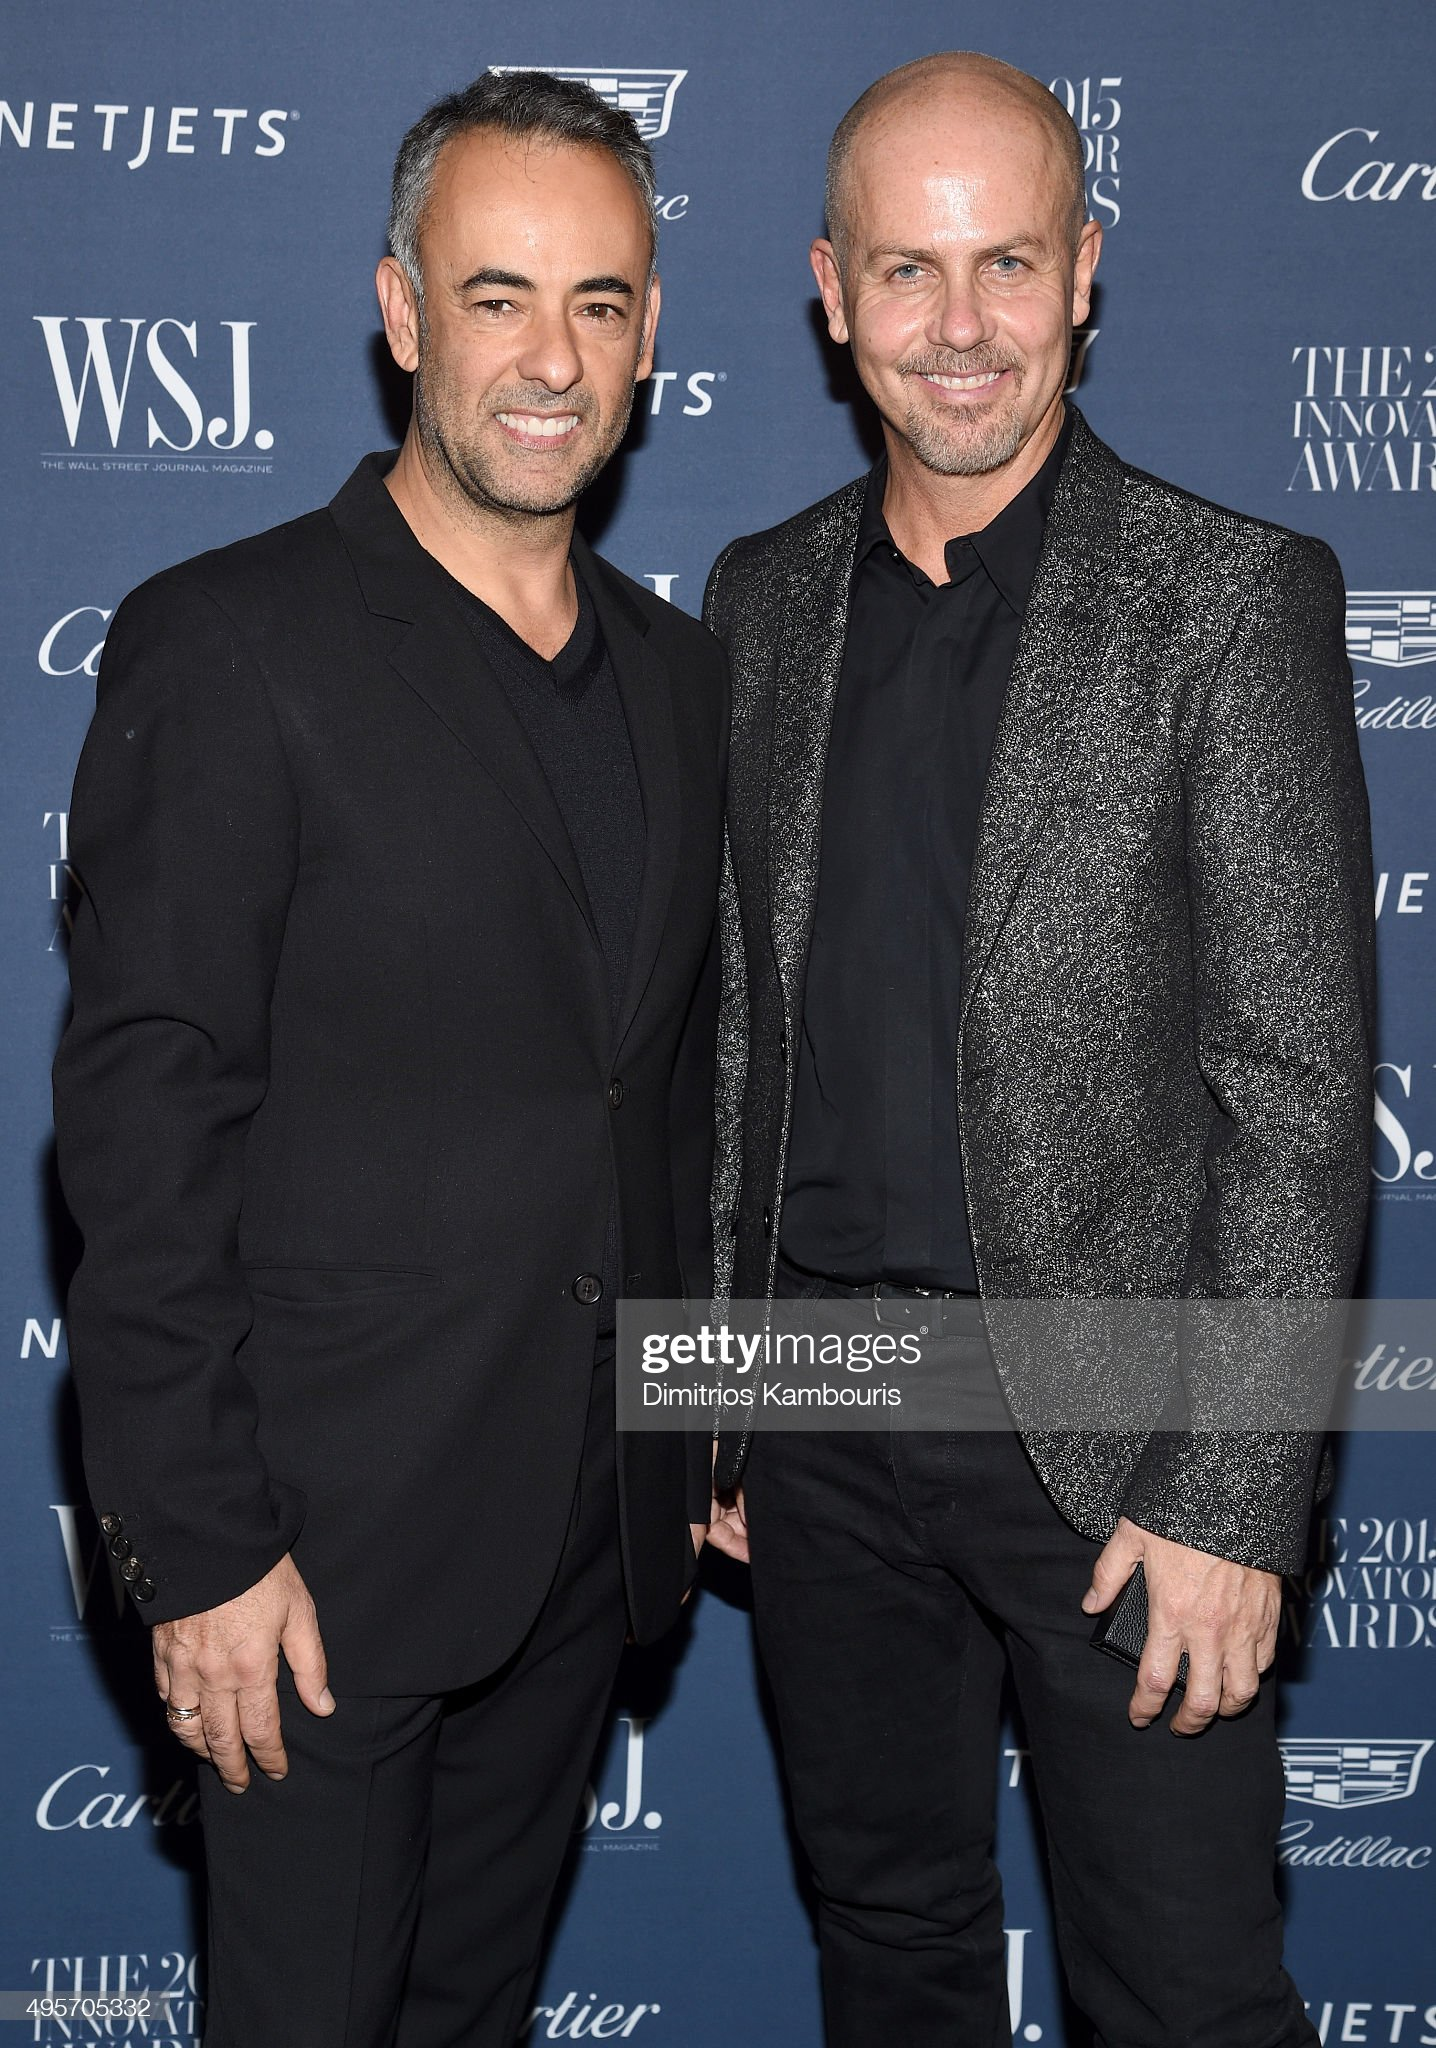 ¿Cuánto mide Italo Zucchelli? - Altura - Real height Designers-francisco-costa-and-italo-zucchelli-attend-the-wsj-magazine-picture-id495705332?s=2048x2048